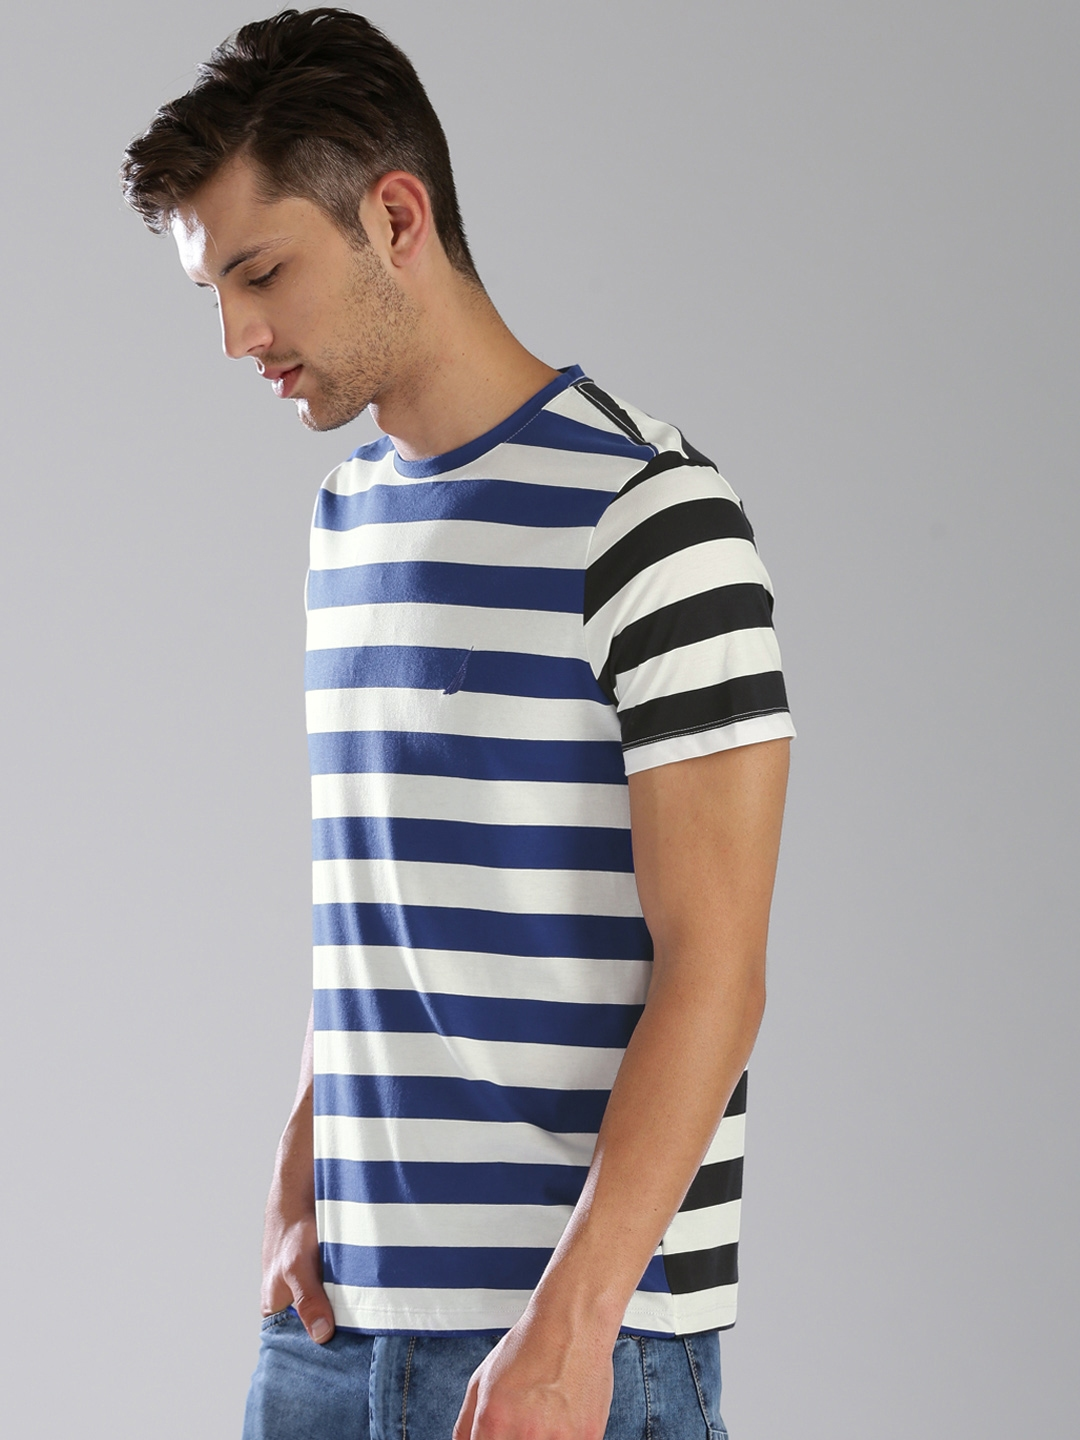 352672e09d Buy Nautica Men Blue & White Striped Round Neck T Shirt - Tshirts ...